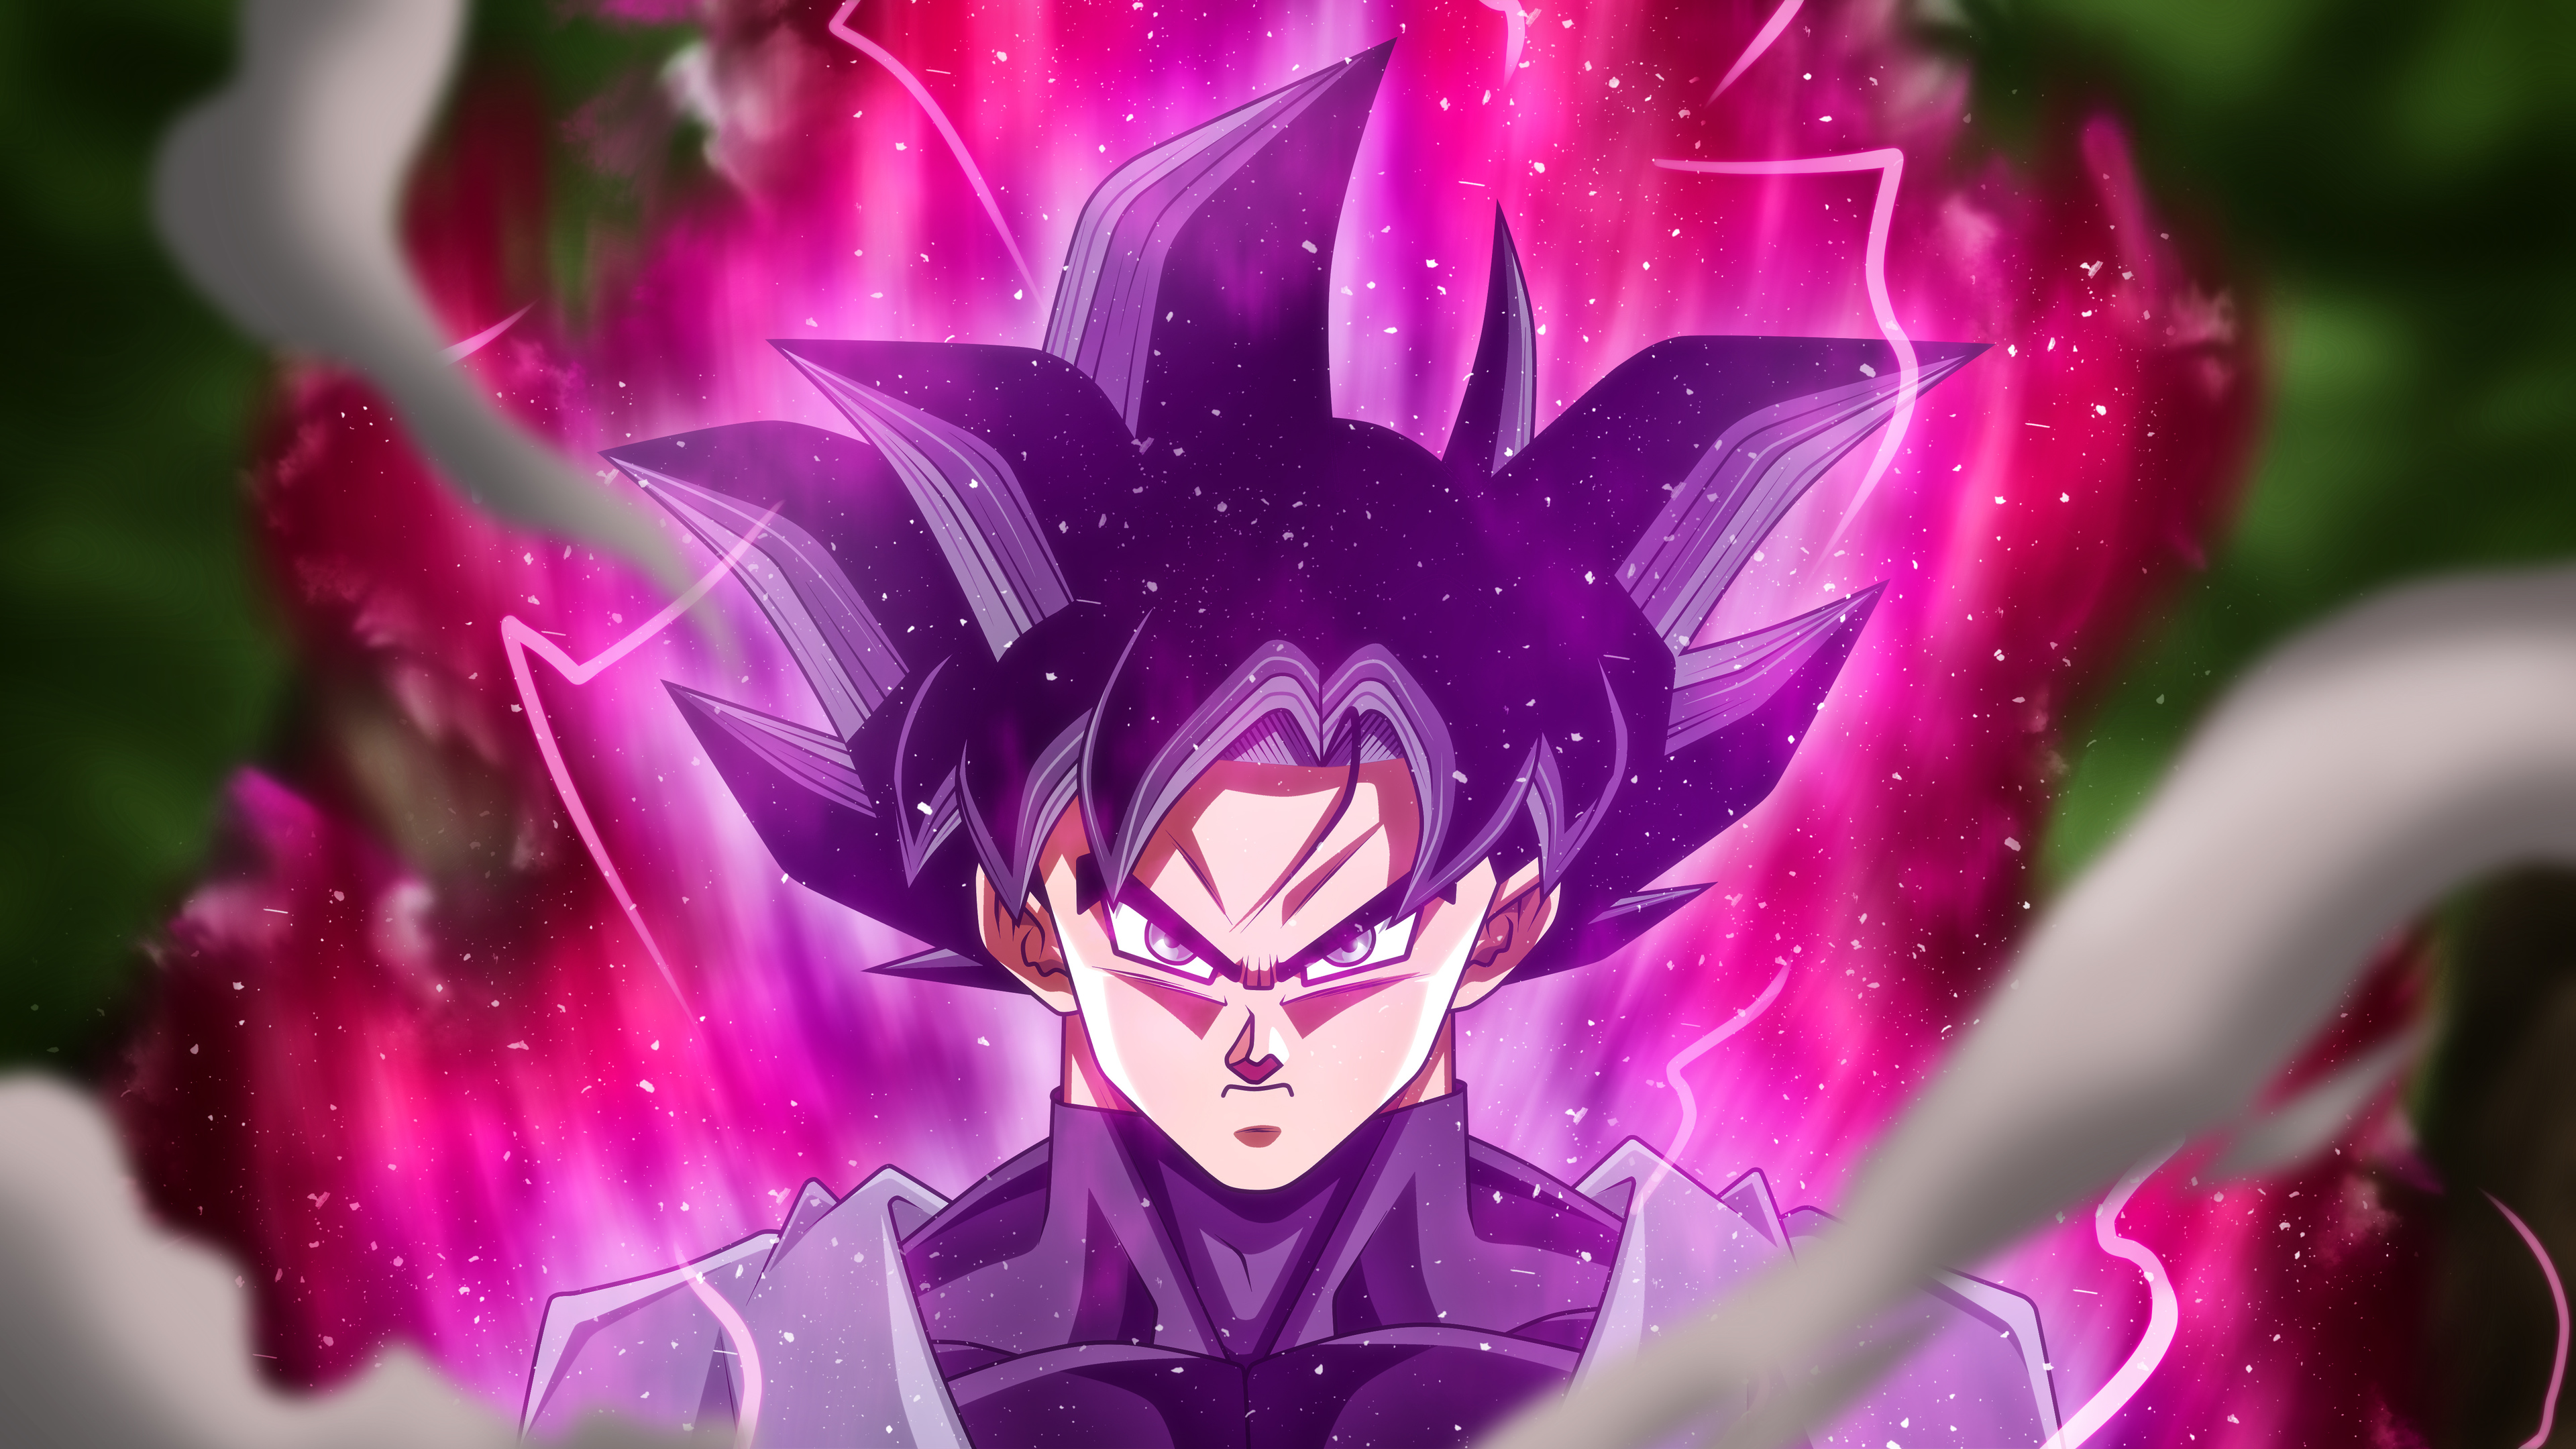 Wallpaper 4k Goku Black 4k 4k Wallpapers 5k Wallpapers Anime Wallpapers Artist Wallpapers Artwork Wallpapers Deviantart Wallpapers Digital Art Wallpapers Goku Wallpapers Hd Wallpapers